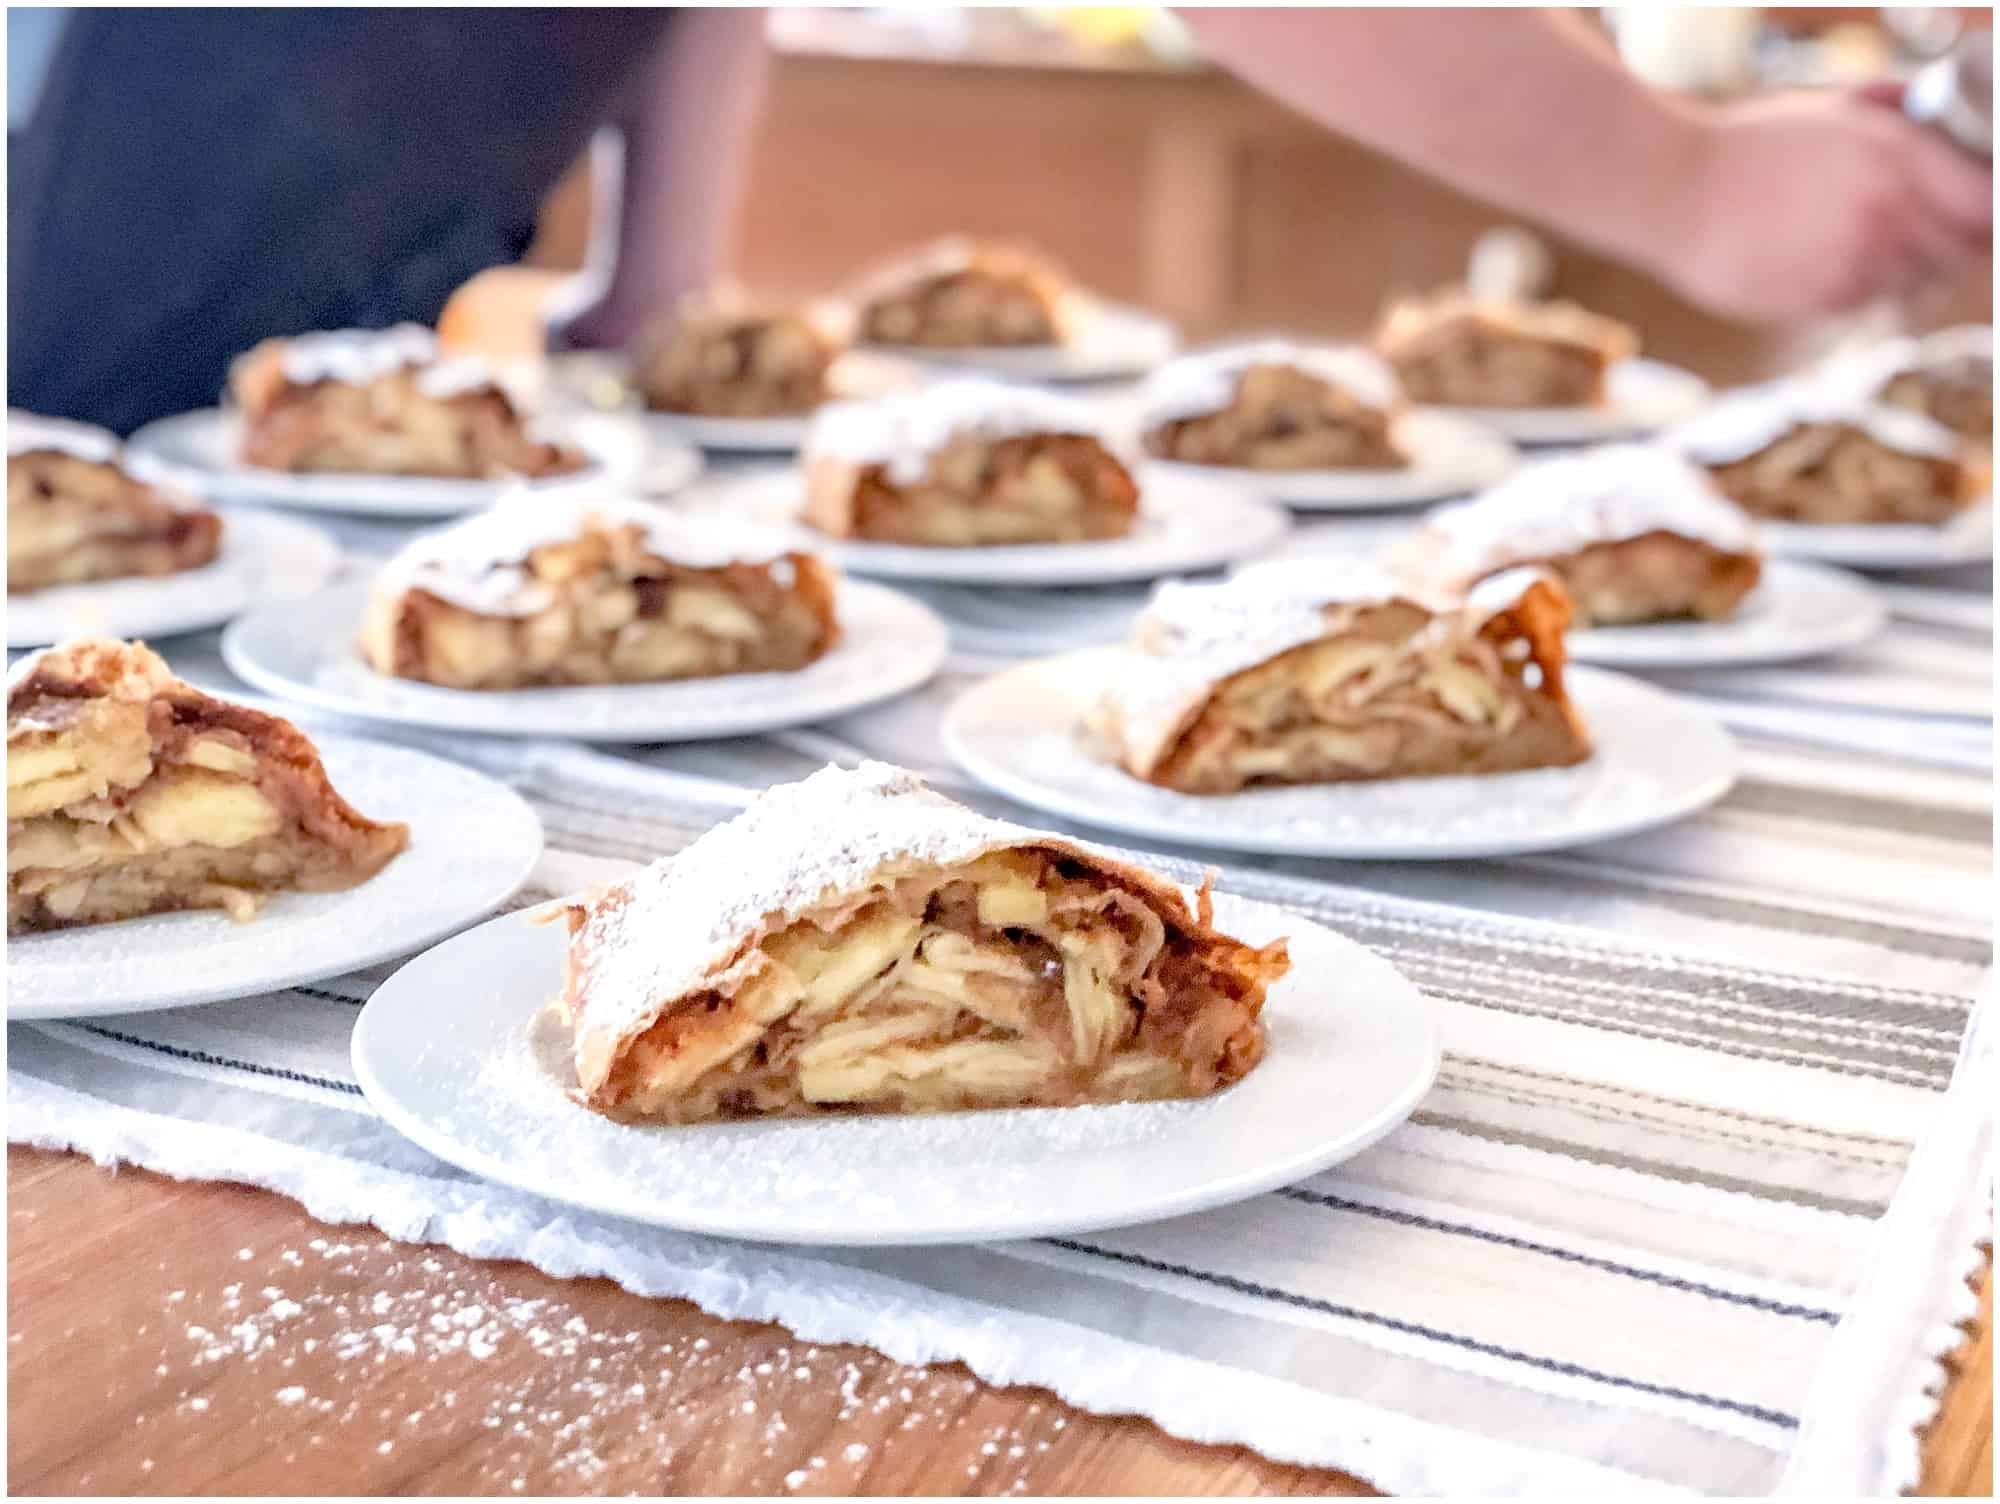 Plates of apple strudel a traditional austrian food